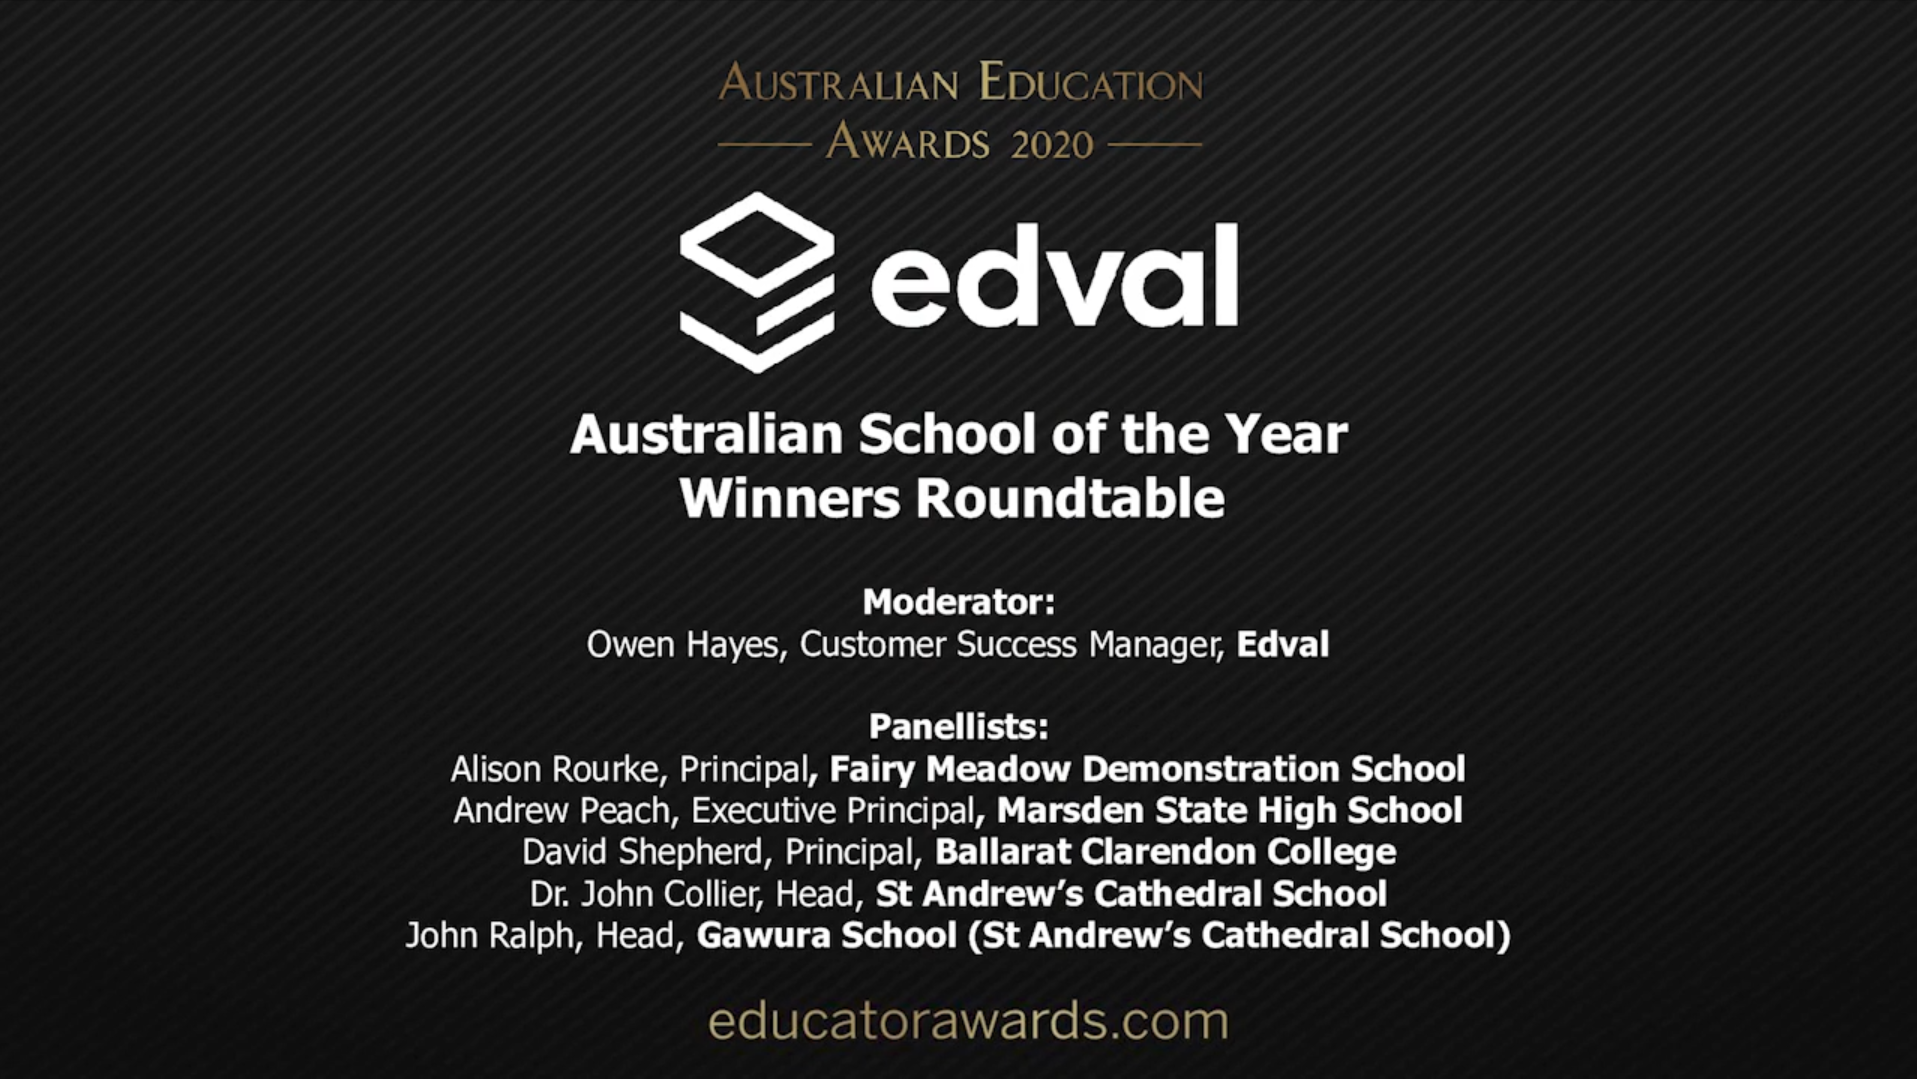 Australian Education Awards - Edval Australian School of the Year Panel